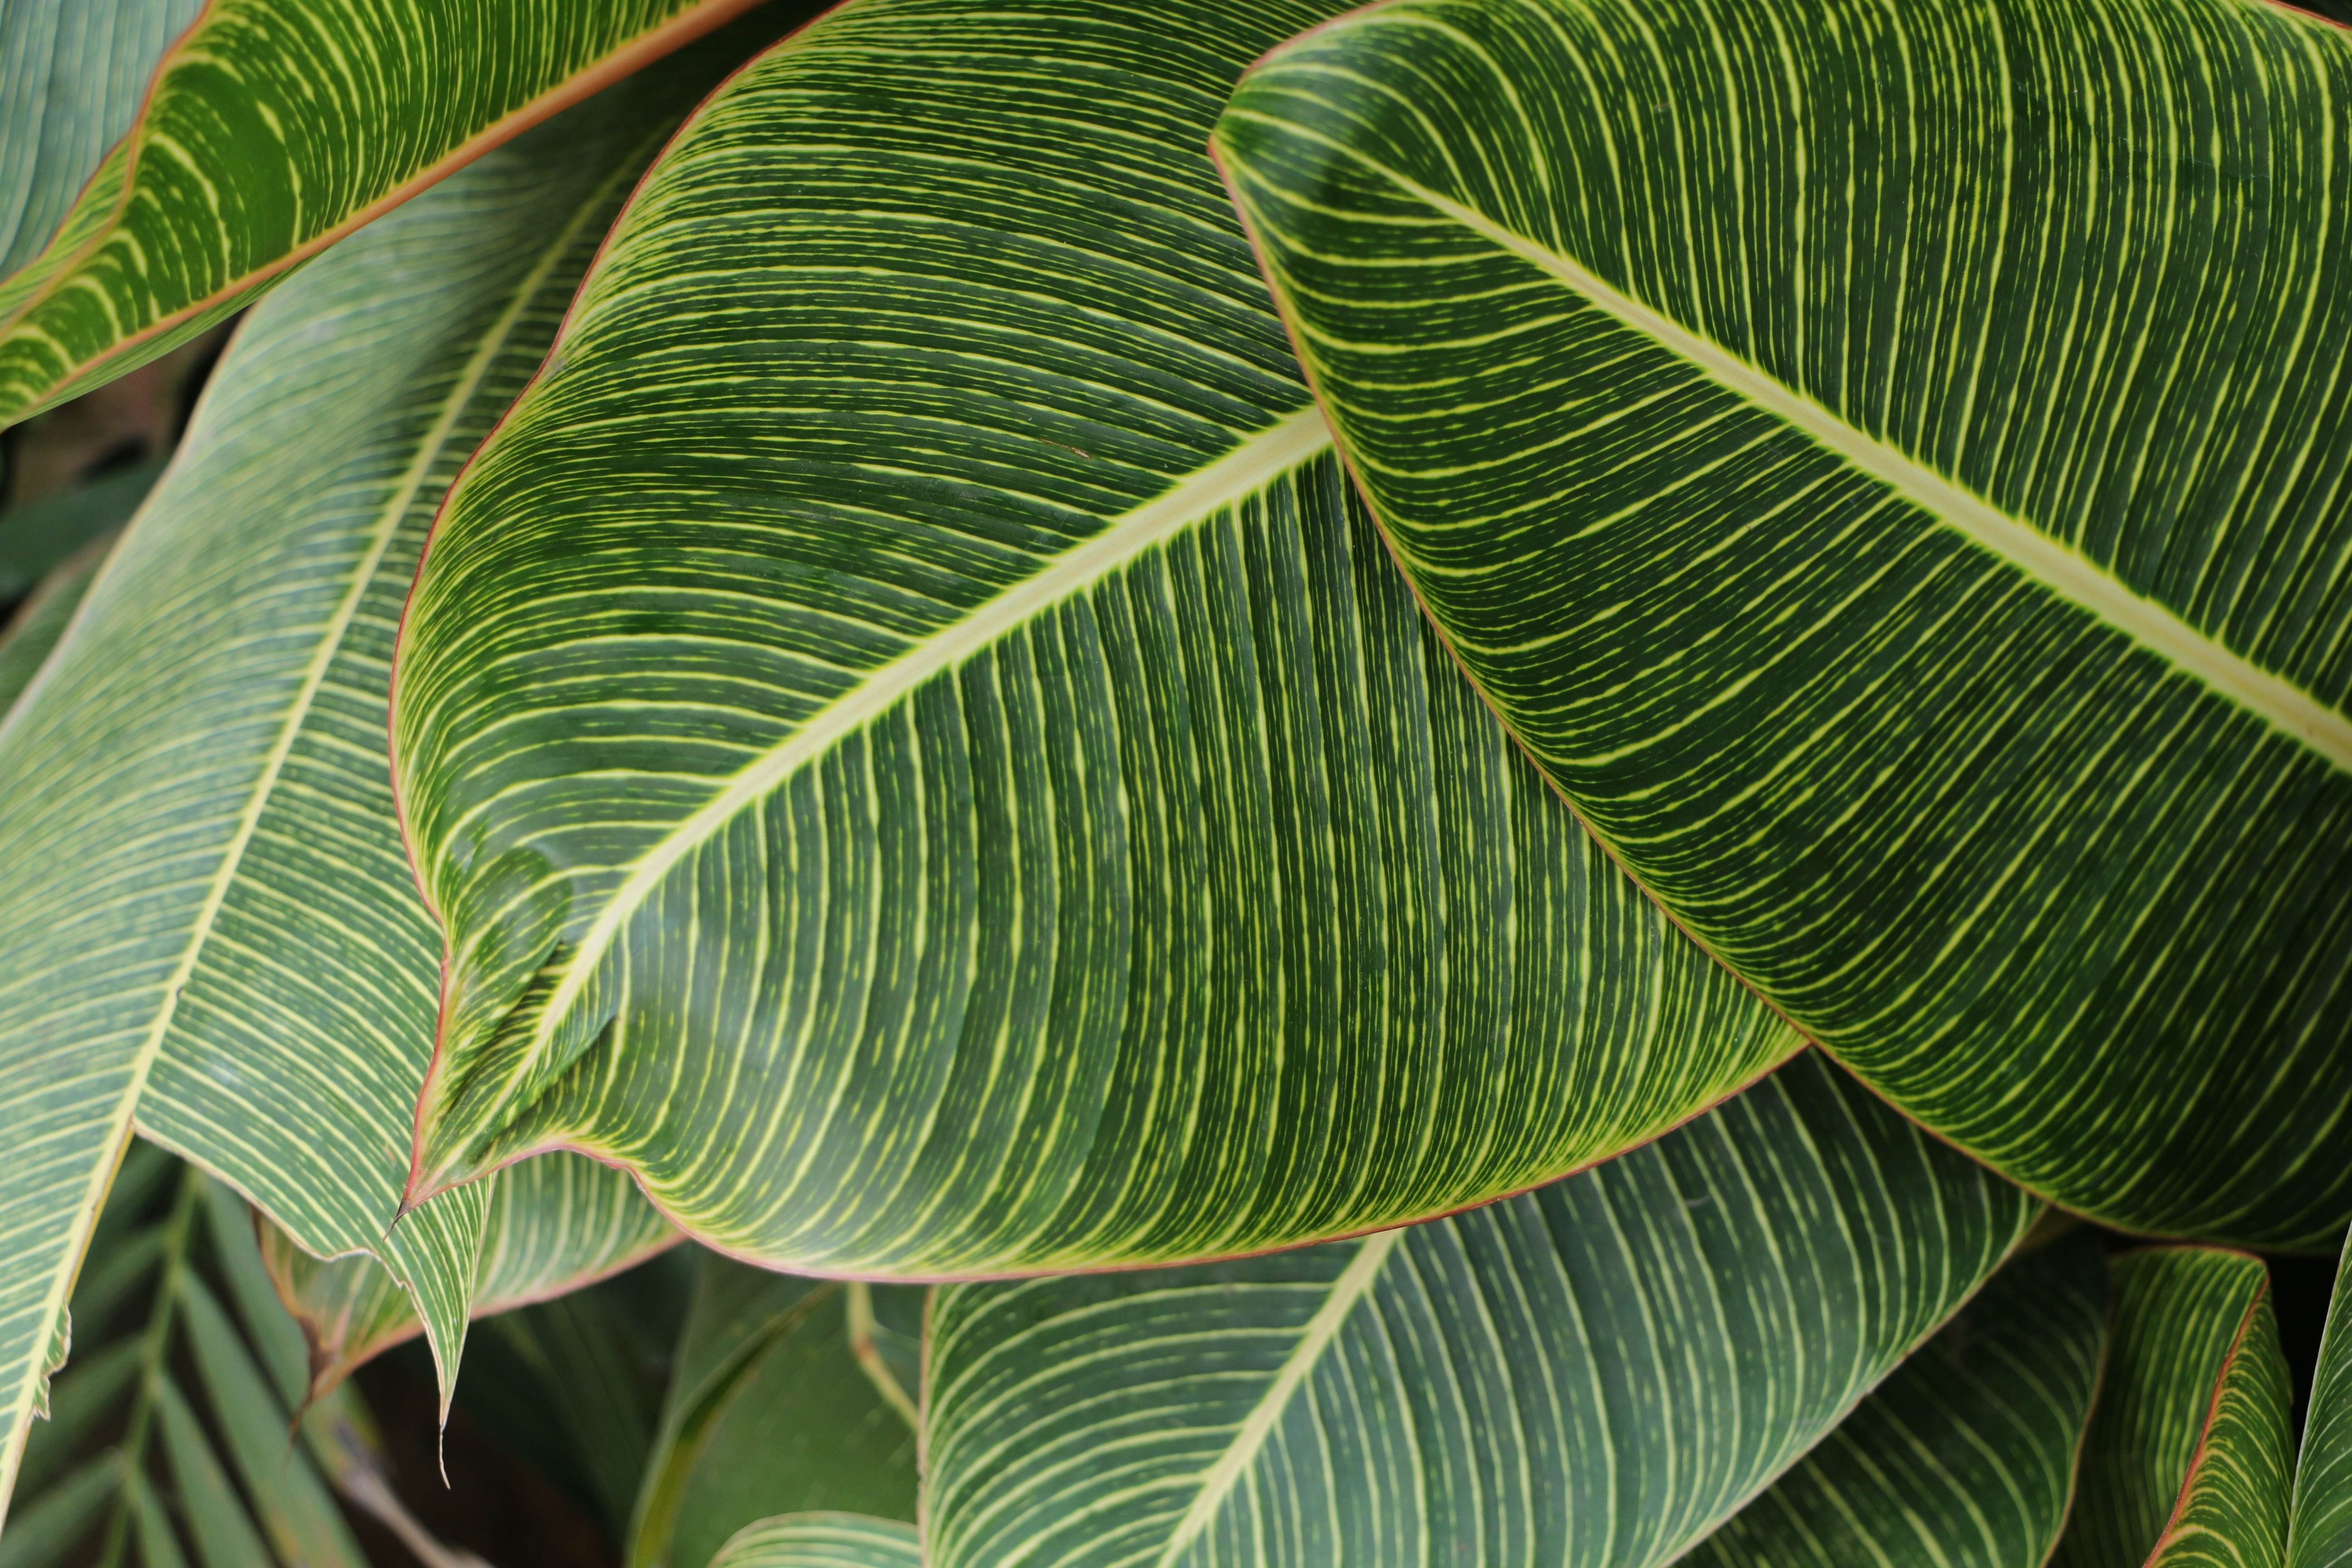 Black And White Leaf Wallpaper Green Leaf Plant 183 Free Stock Photo